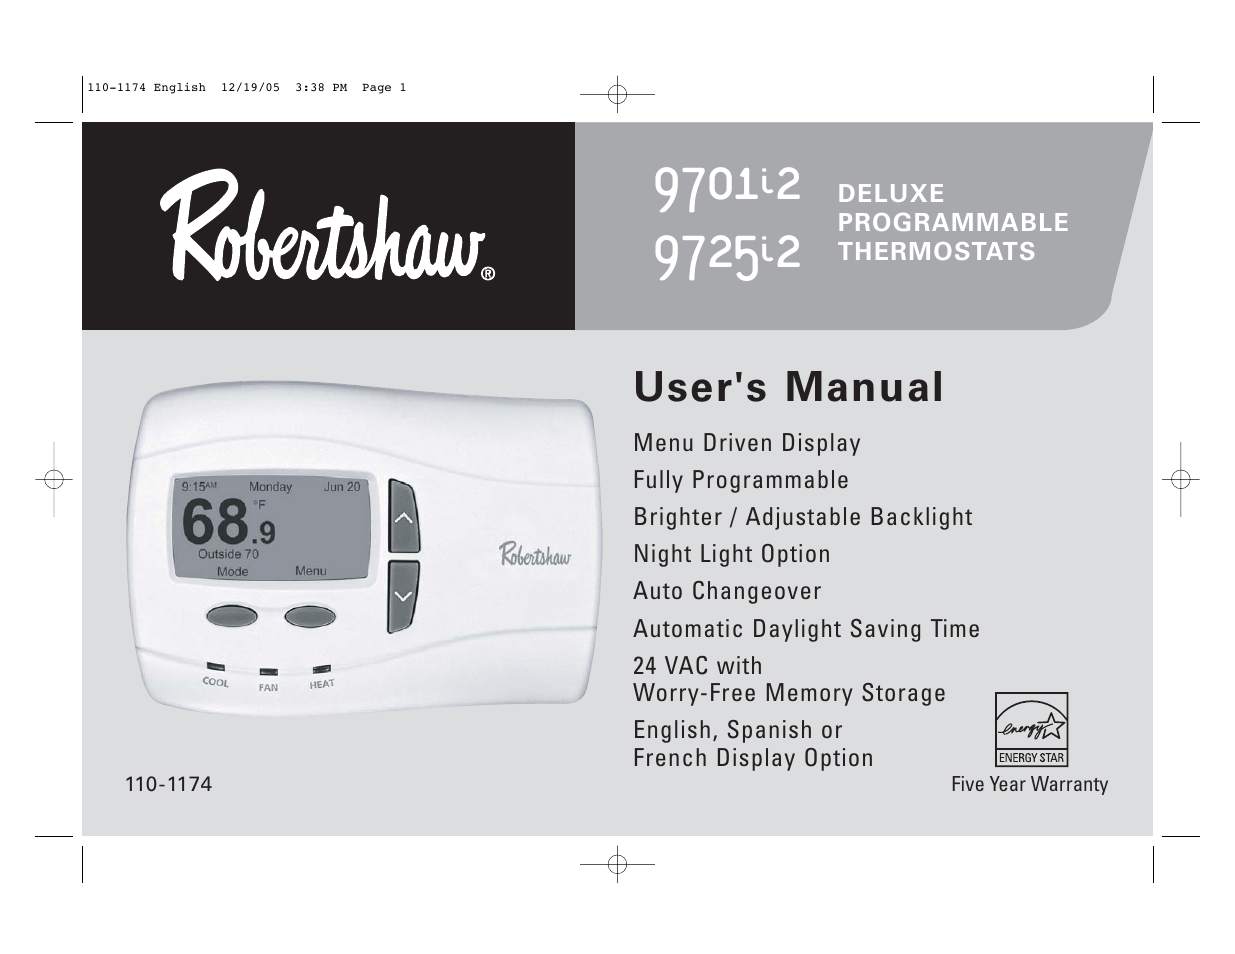 robertshaw 9725i2 users manual user manual 32 pages also for rh manualsdir com Craftsman Snowblower Manual Craftsman Snowblower Manual